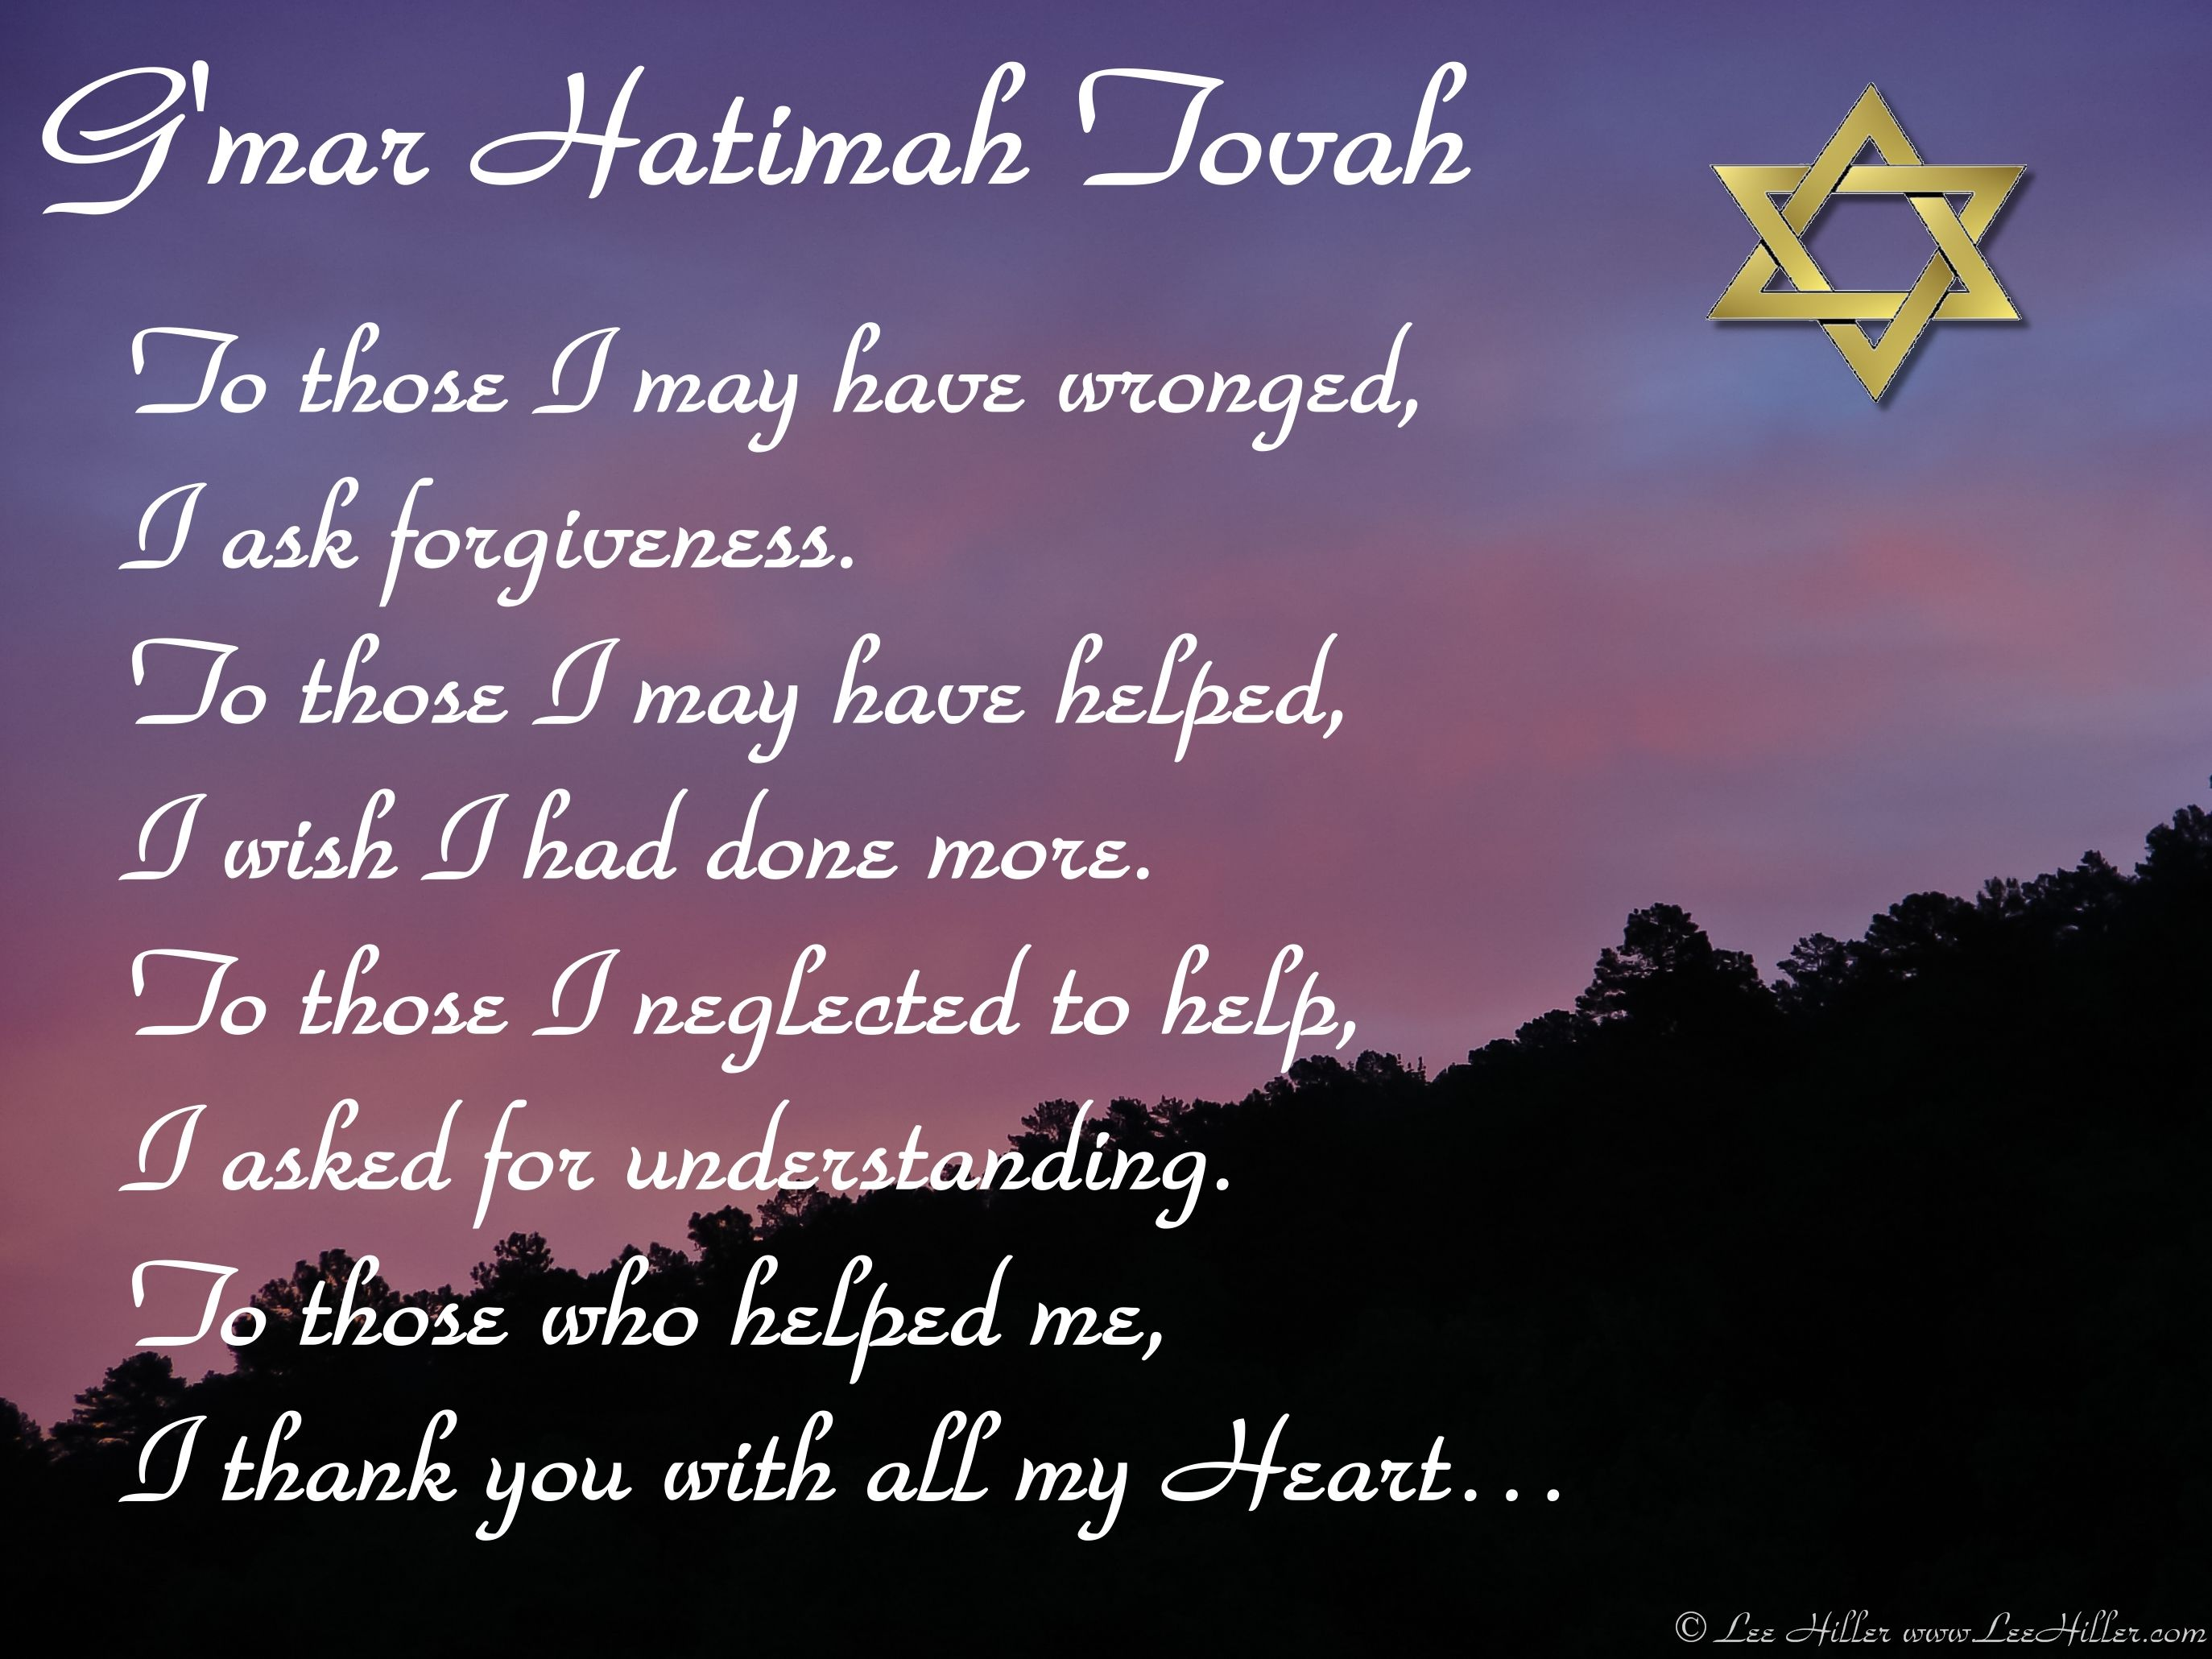 Gmar Hatimah Tovah May You Be Sealed For A Good Year In The